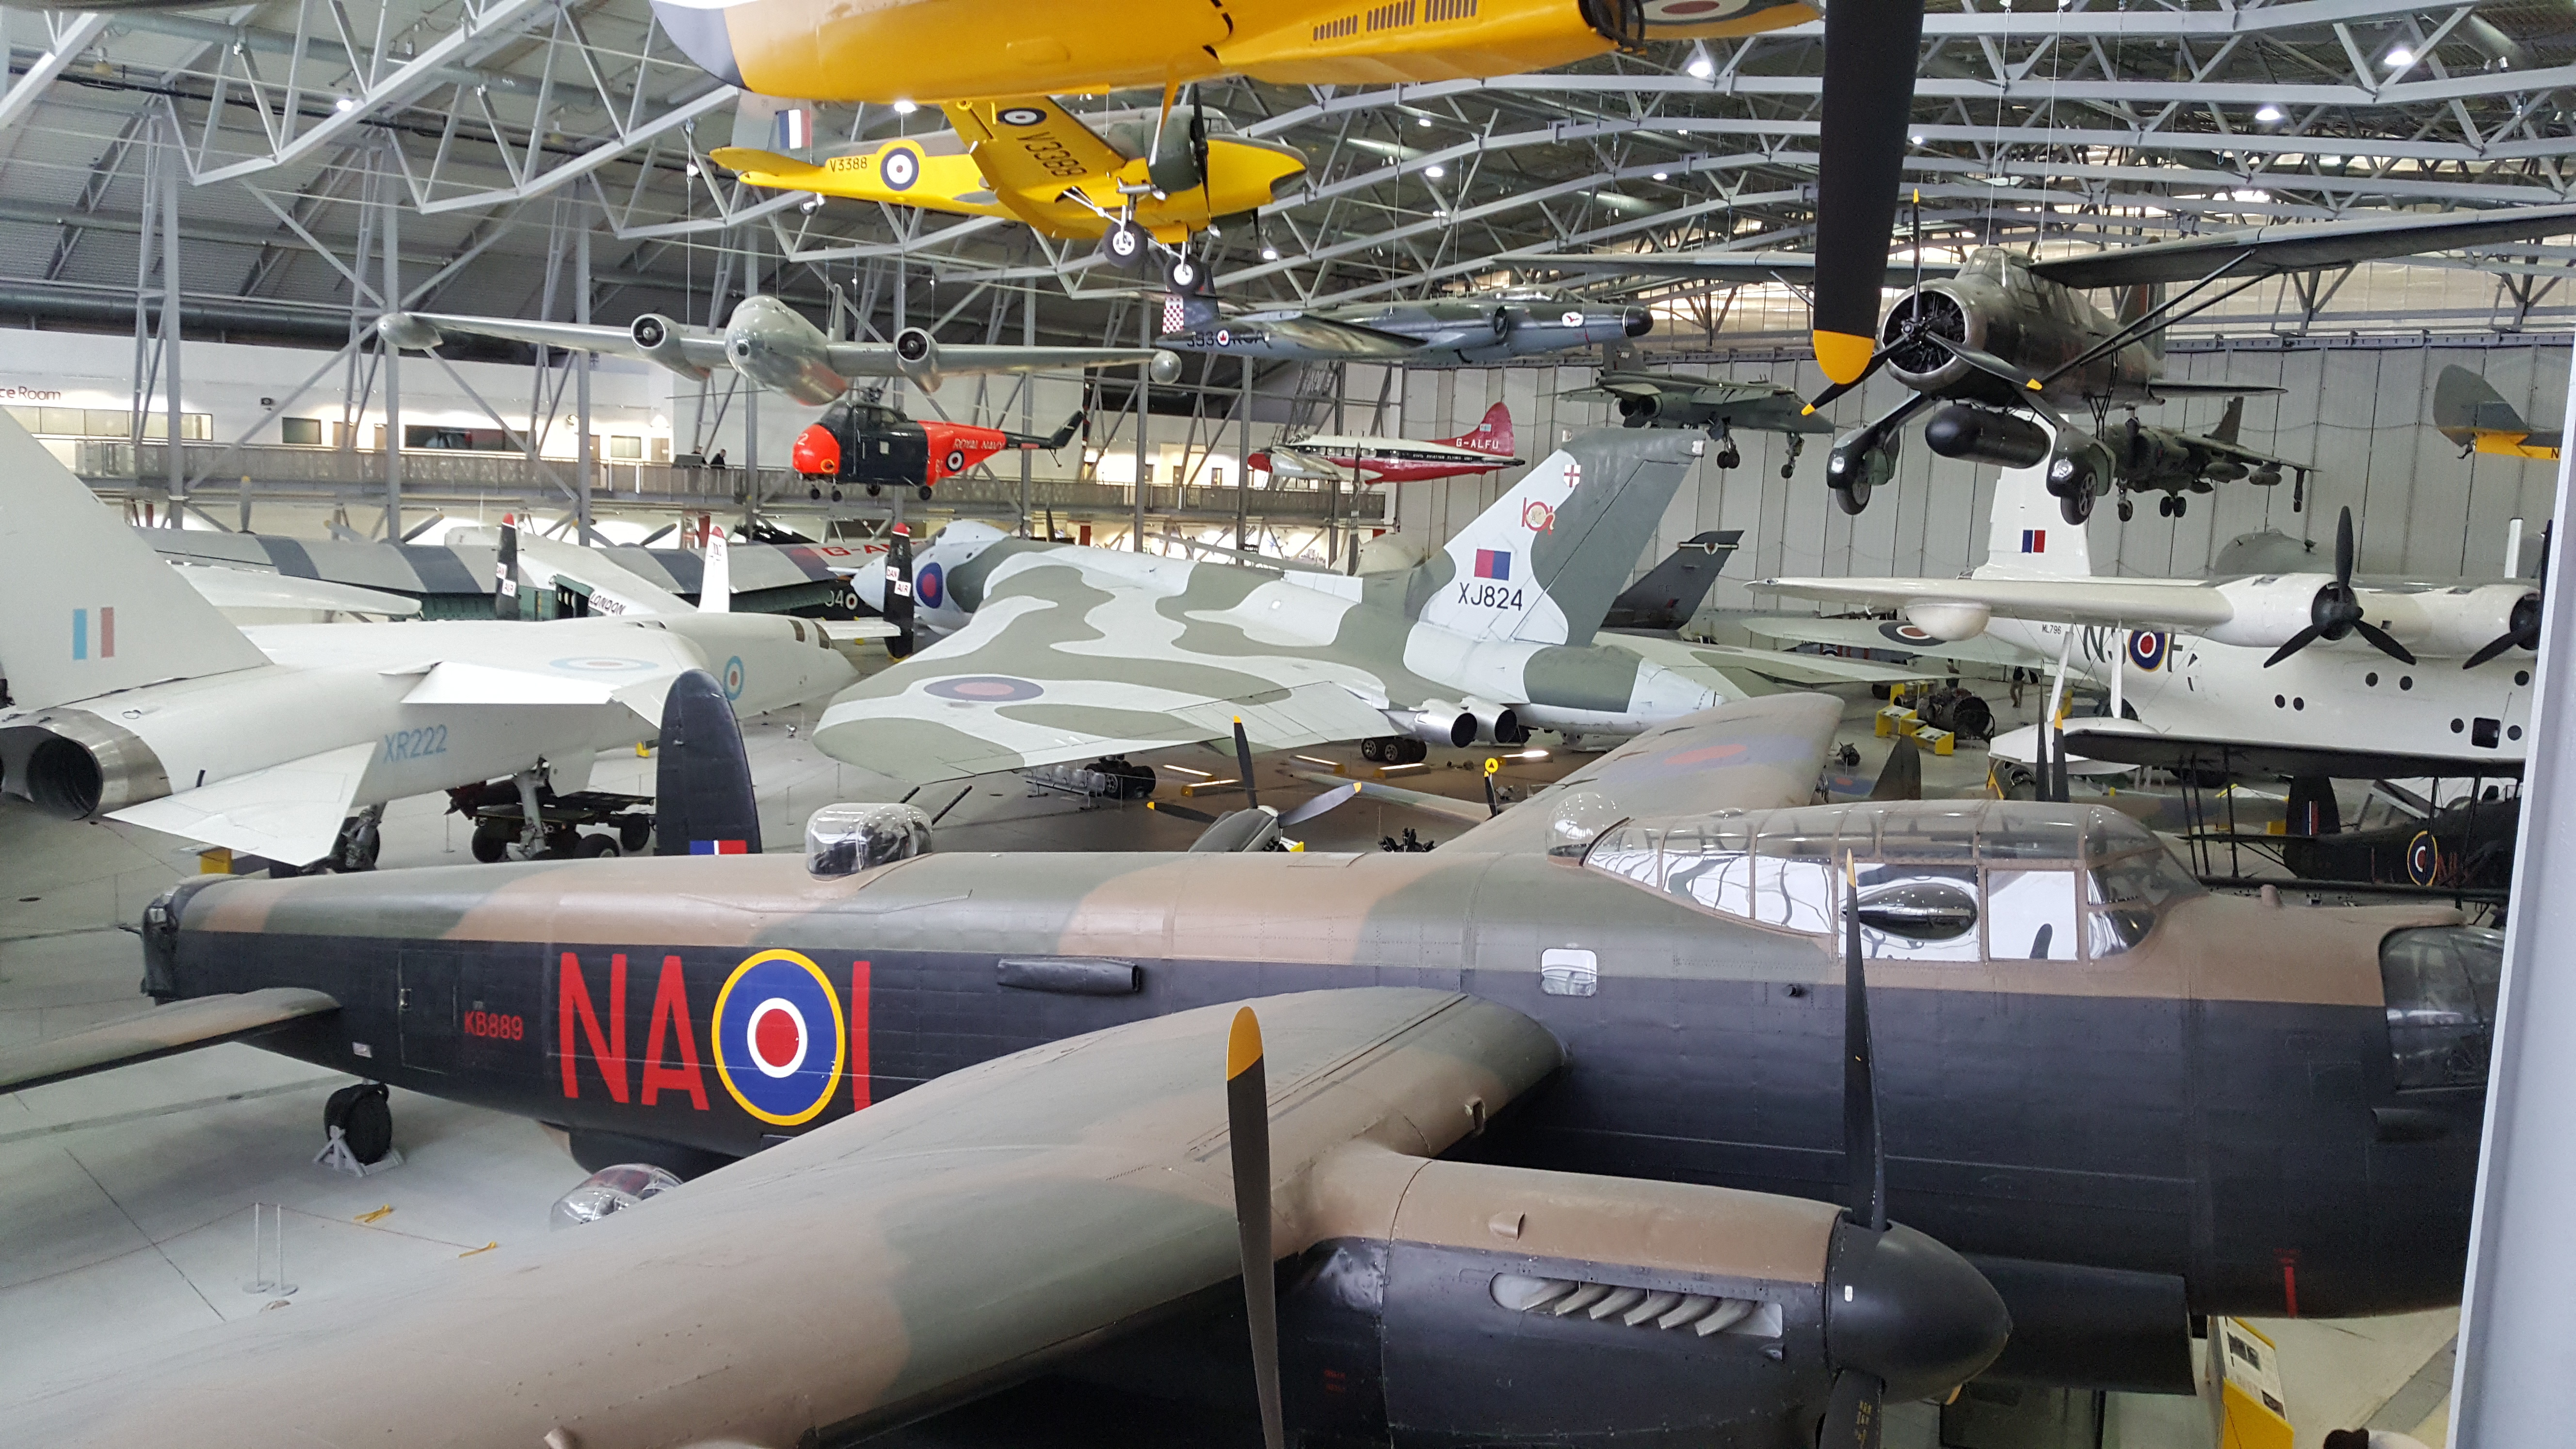 The aircraft of the Imperial War Museum Duxford | anapophist